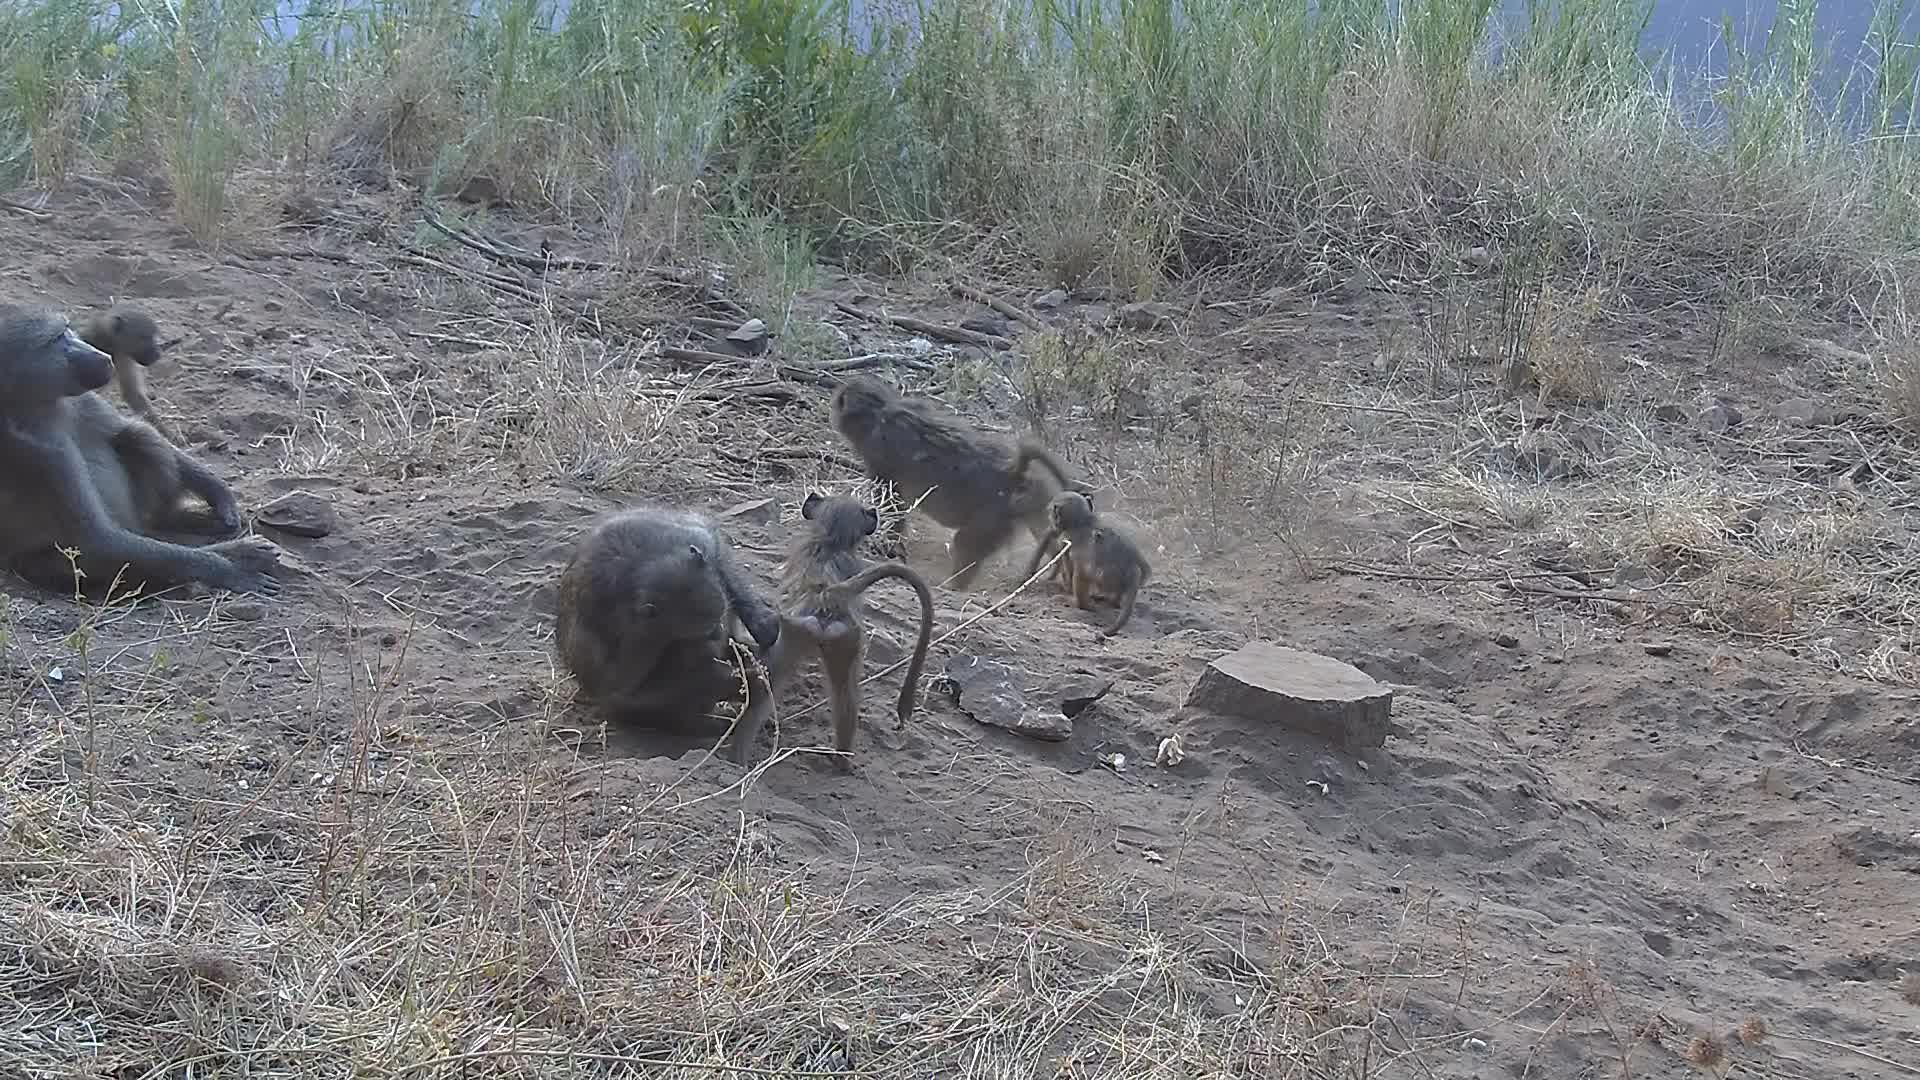 VIDEO: Baboons grooming and the young ones are playing